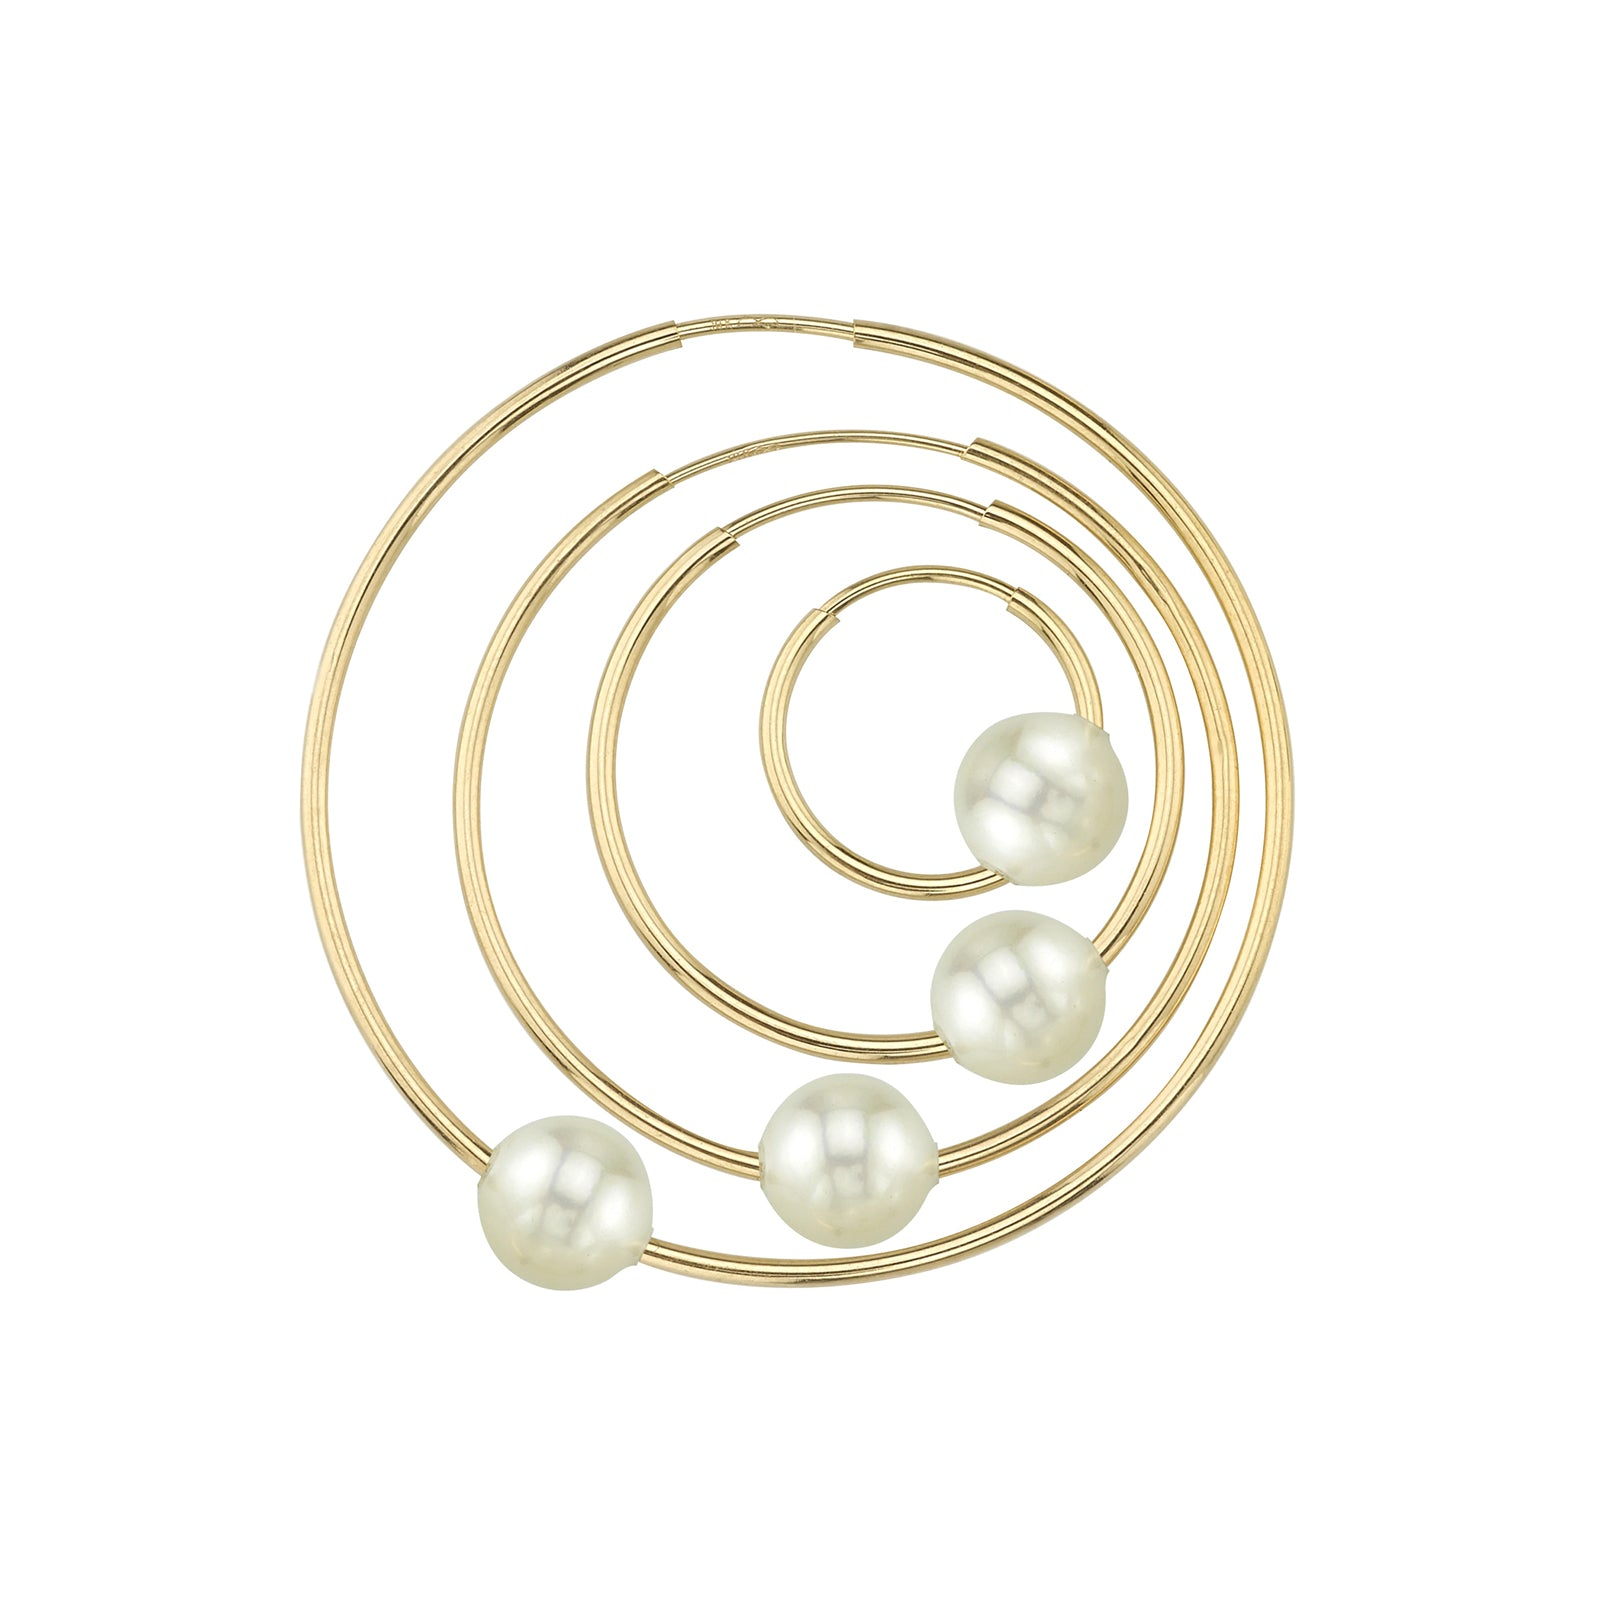 Gabriela Artigas & Company Cosmos Pearl Hoop - Yellow Gold 21mm - Earrings - Broken English Jewelry